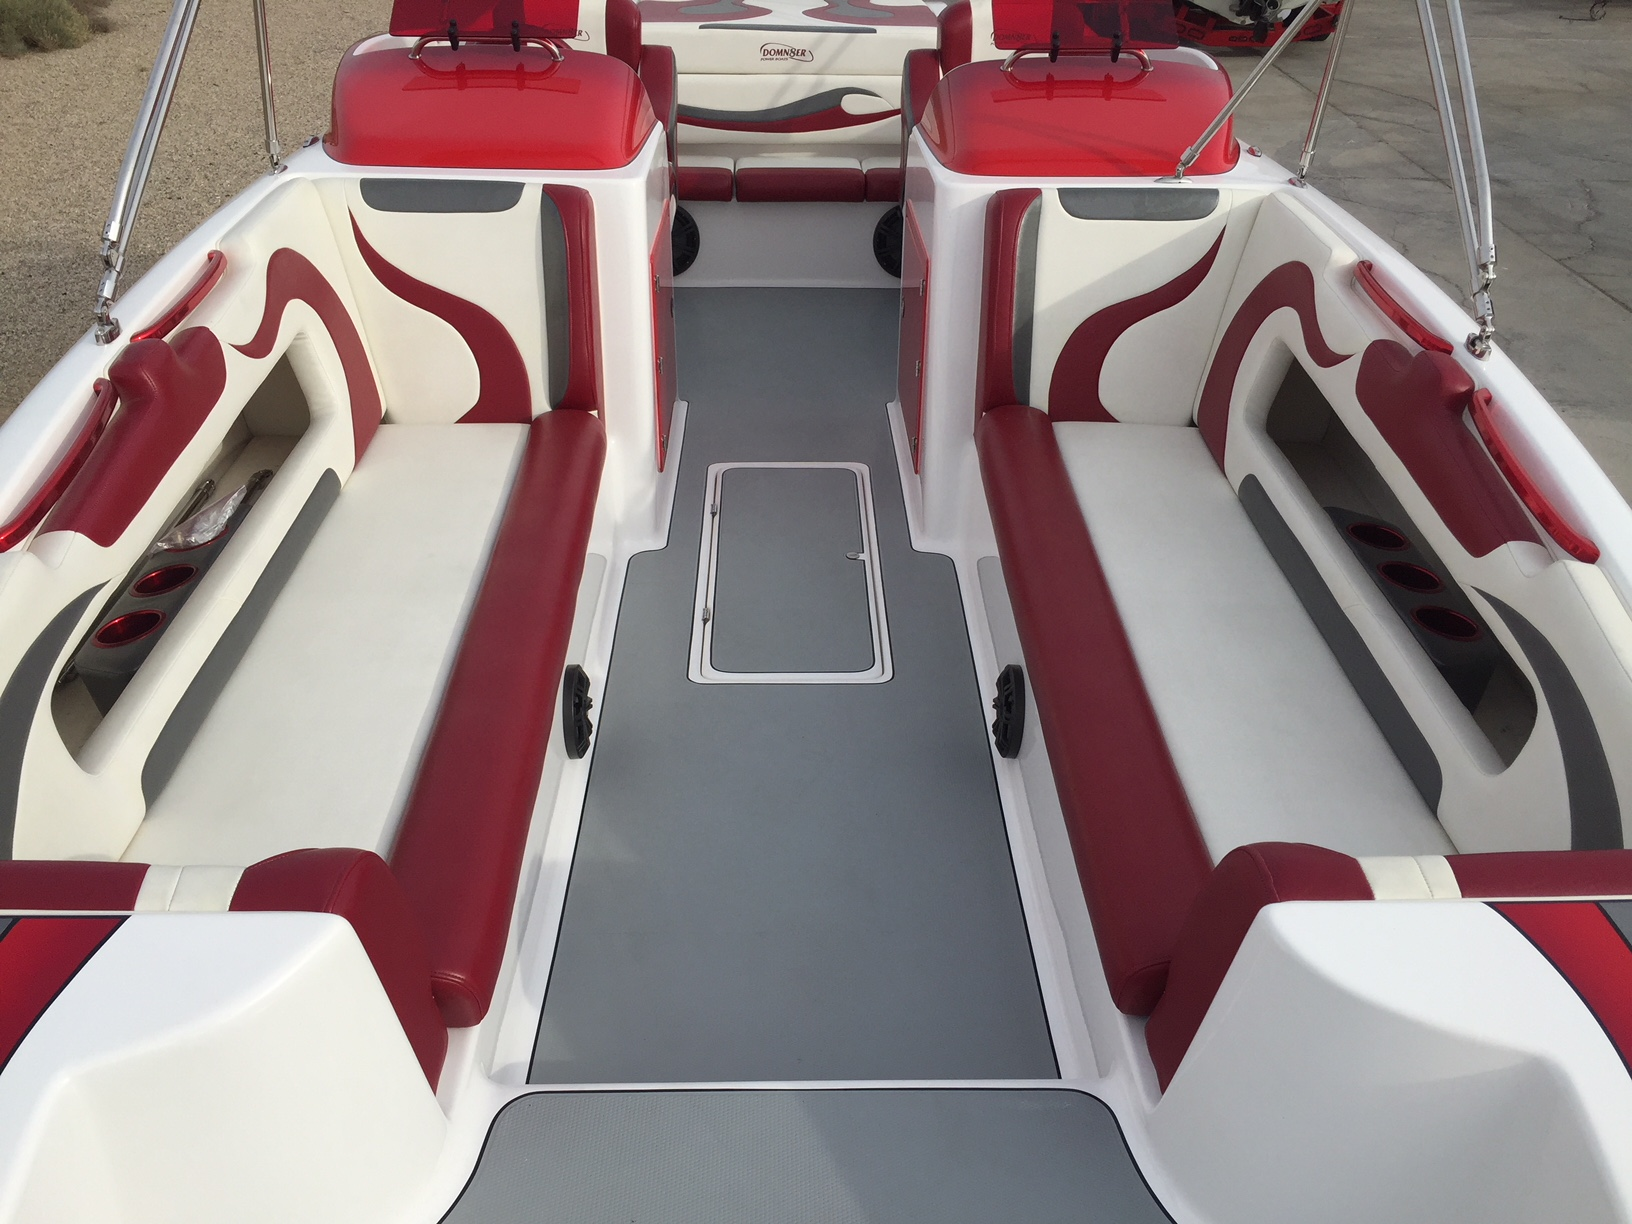 2016 Domn8er Deck Boat 40 Hours 600 Hp With Scx Drive